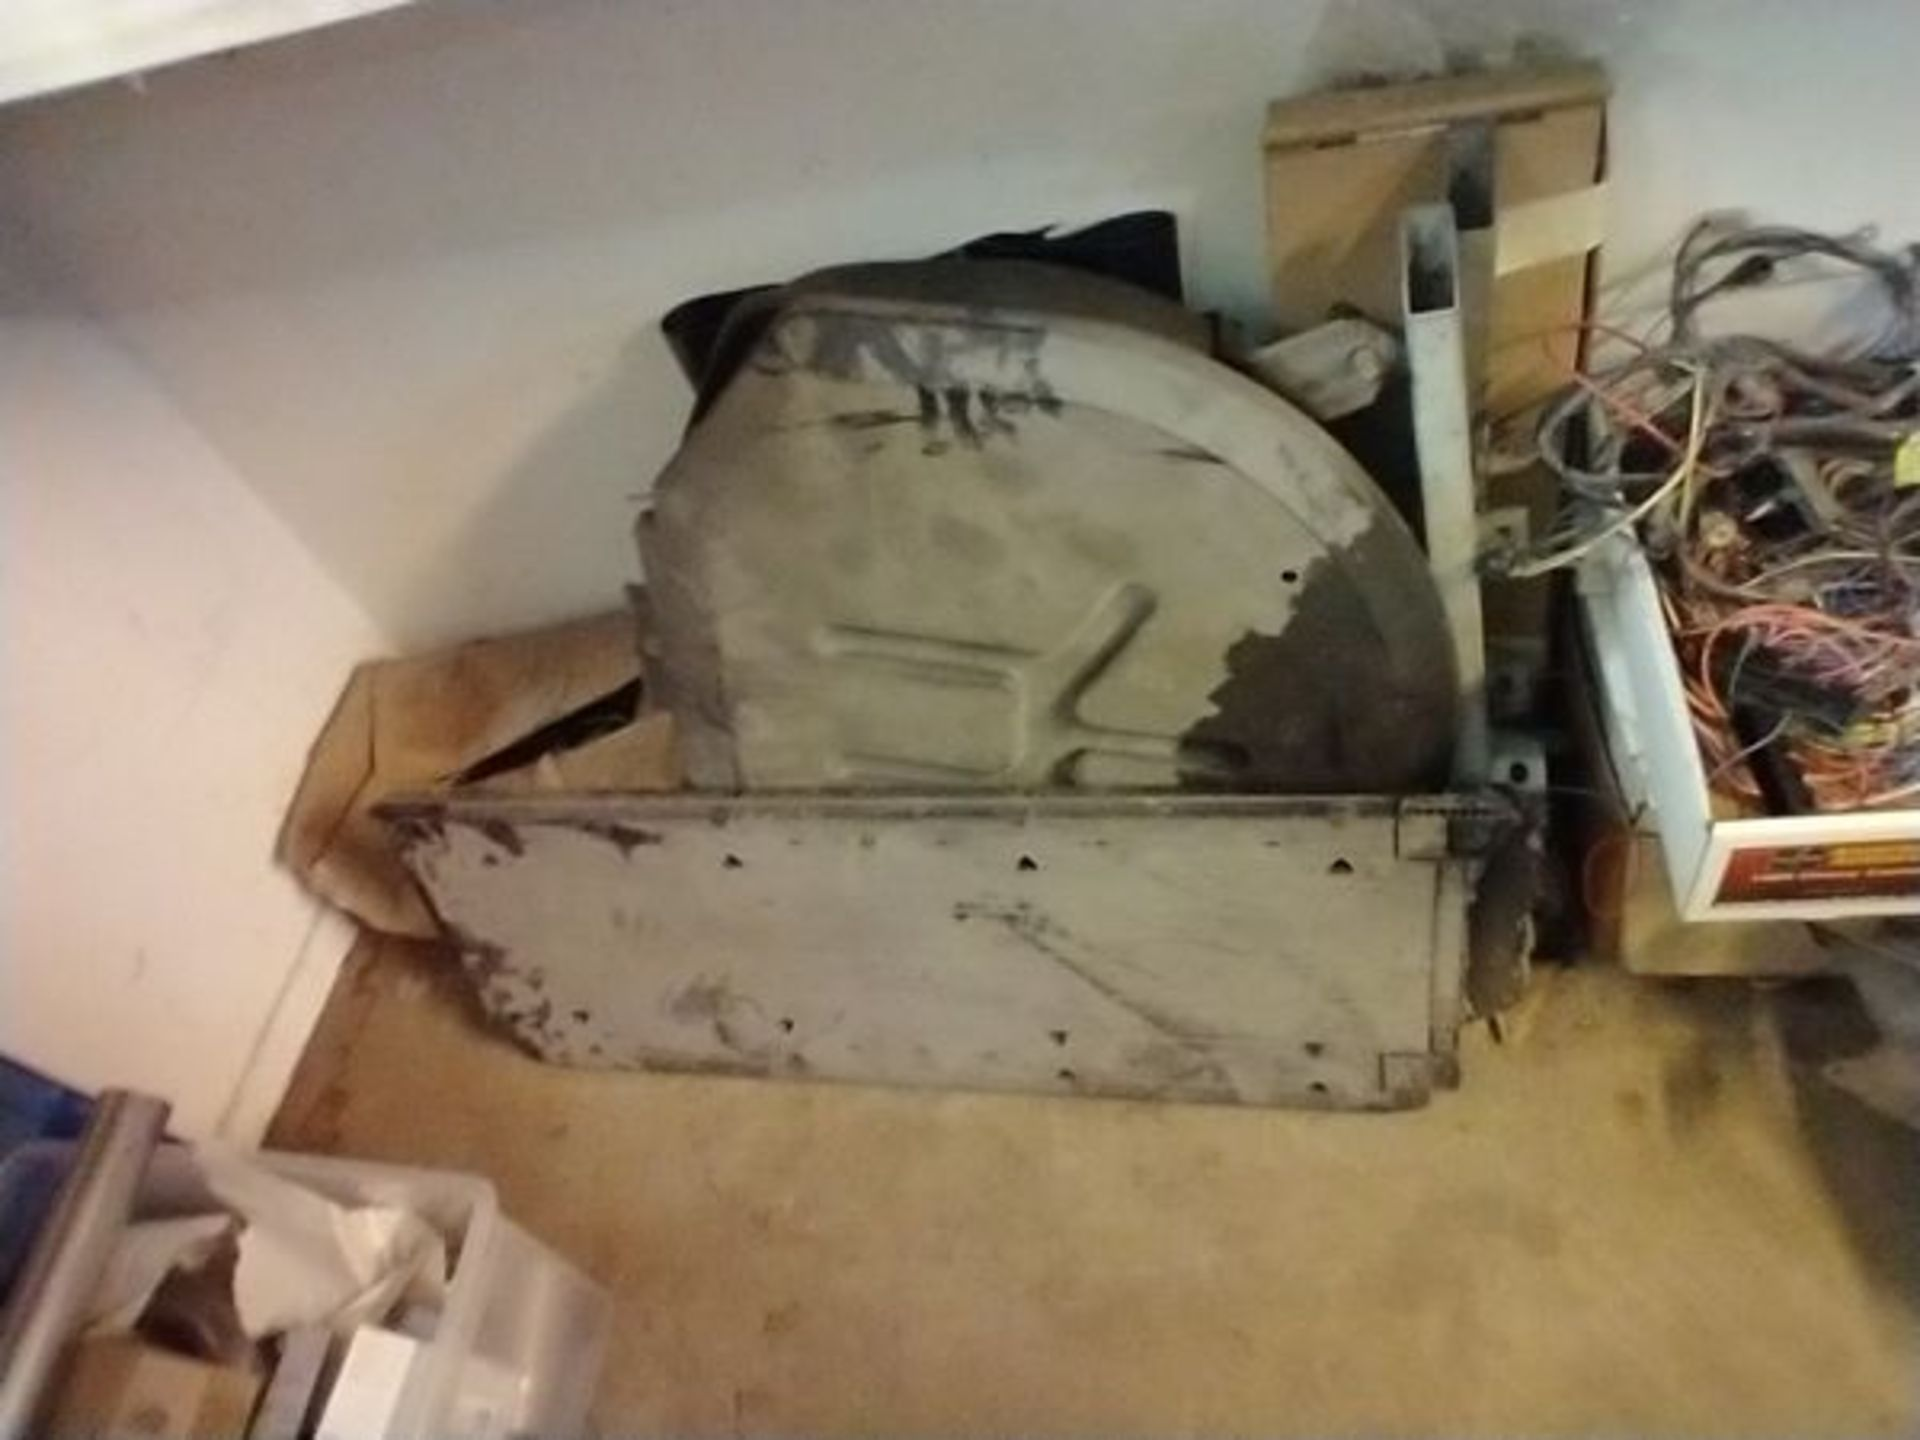 LOT OF ASSORTED CAR PARTS ON 2 SHELVES AND FLOOR - Image 17 of 23